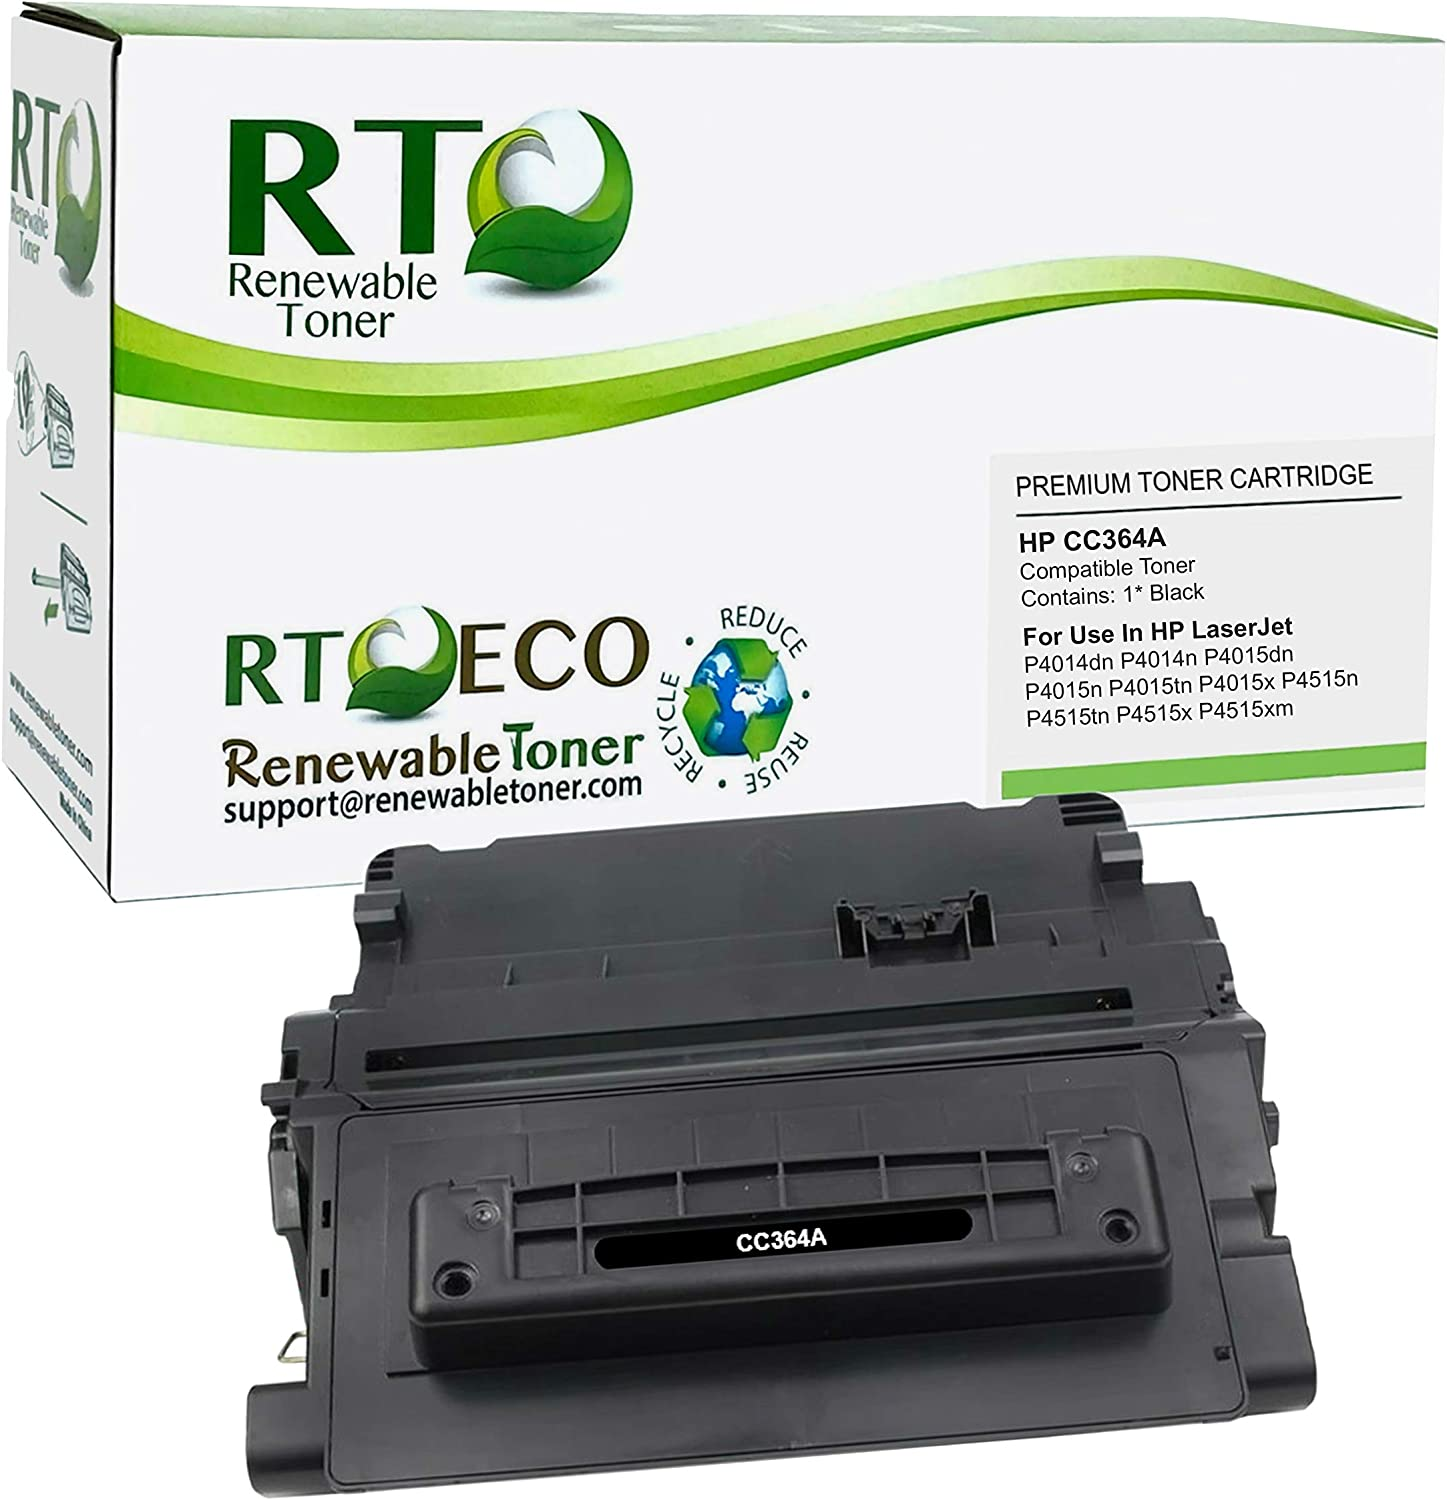 Renewable Toner Compatible Toner Cartridge Replacement HP 64A CC364A for LaserJet P4014 P4015 P4515